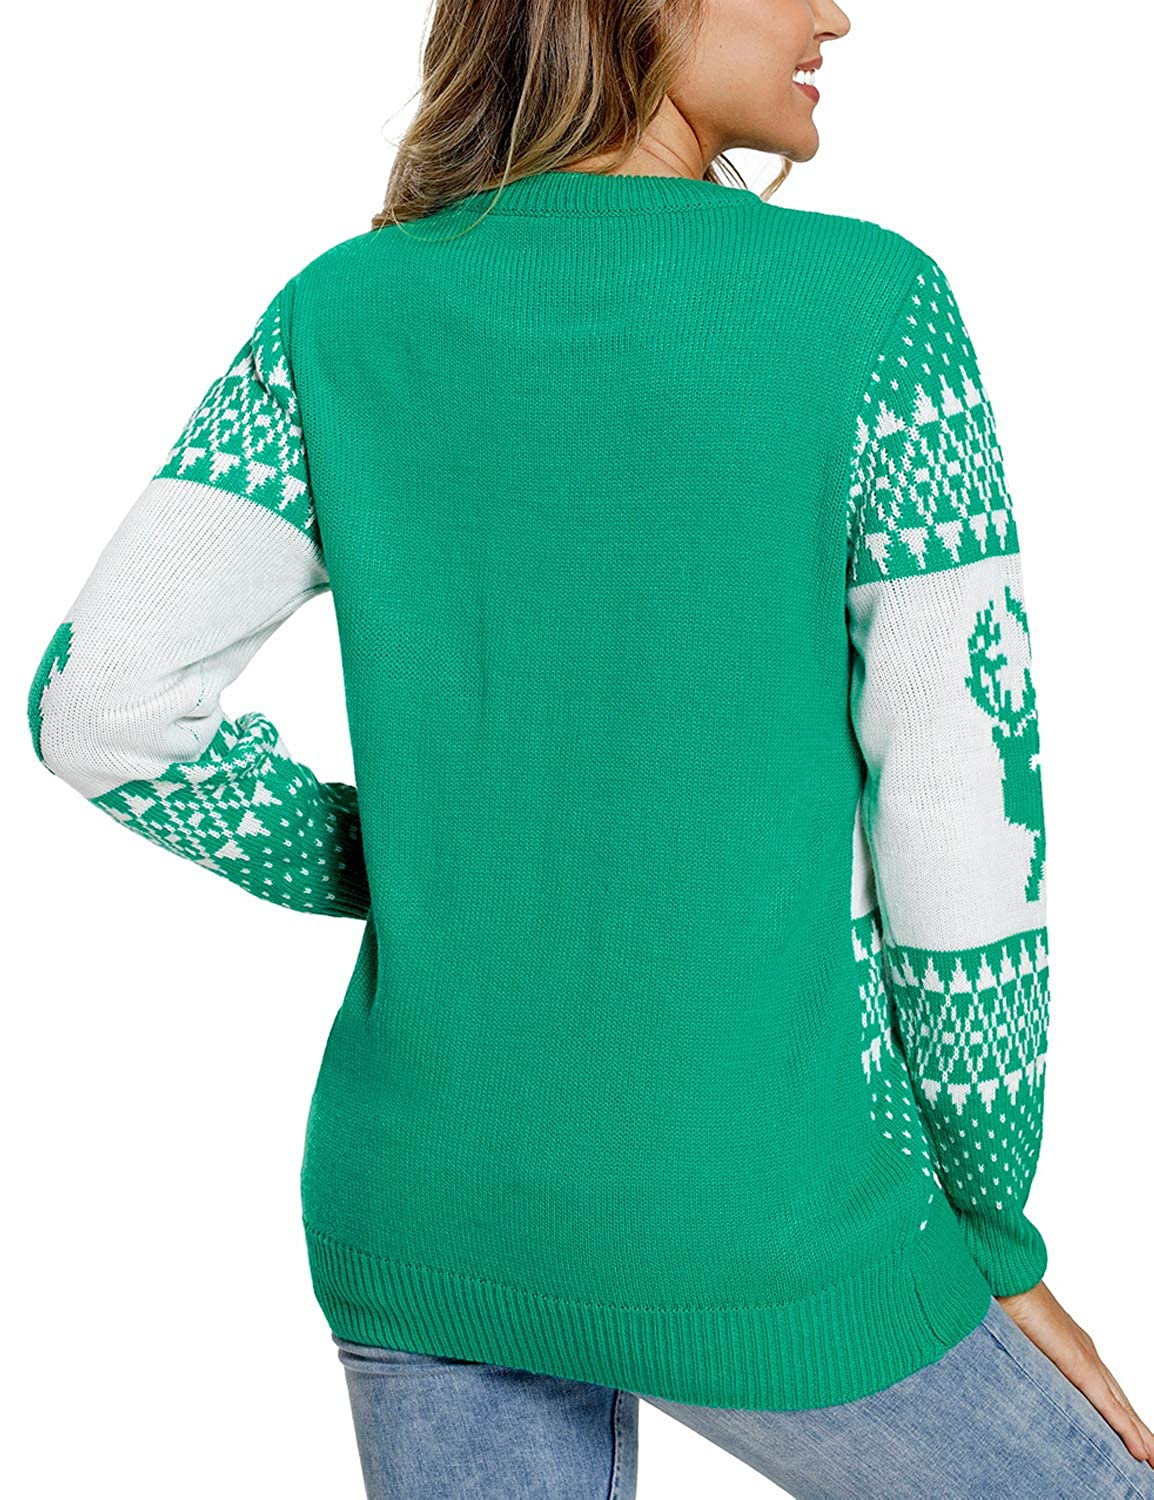 Lookbook Store Women Ugly Christmas Tree Reindeer Holiday Knit Sweater Pullover LBS-TO-27827